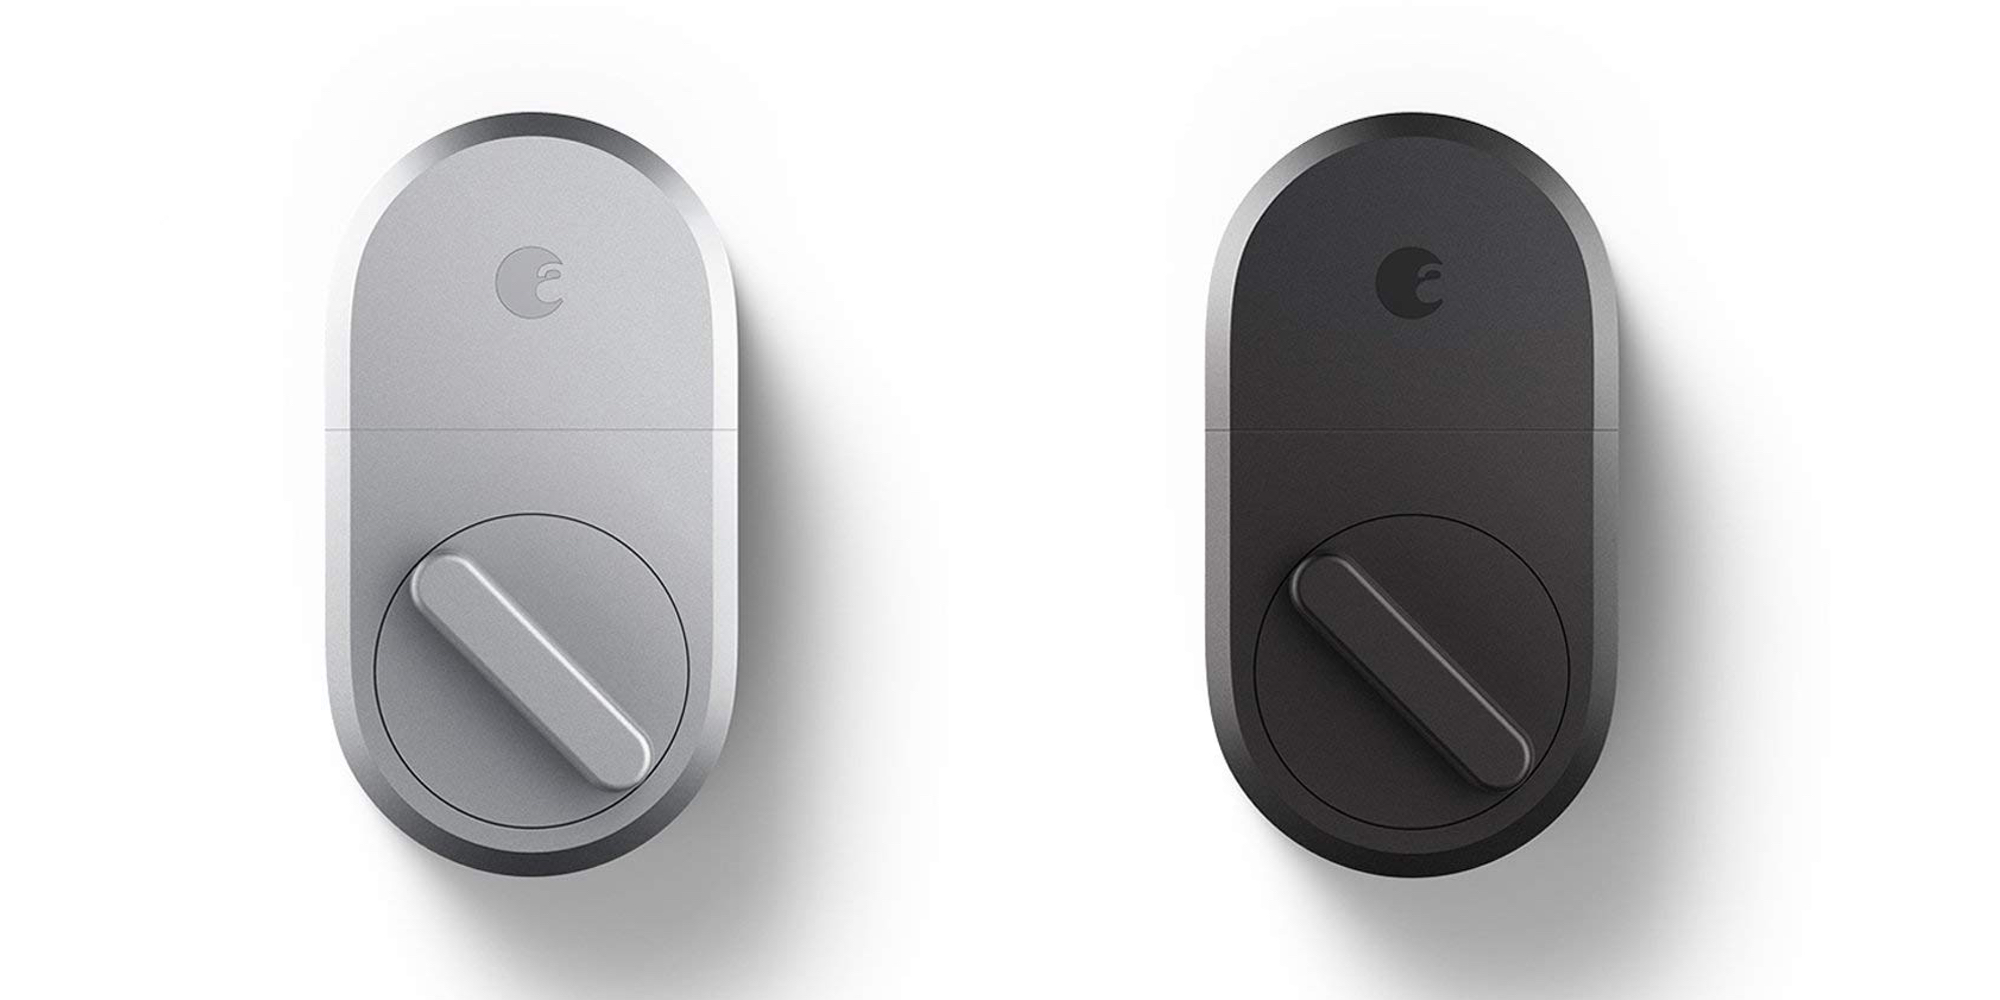 Amazon destroys August HomeKit smart lock lows with up to 50% off, starting at $55